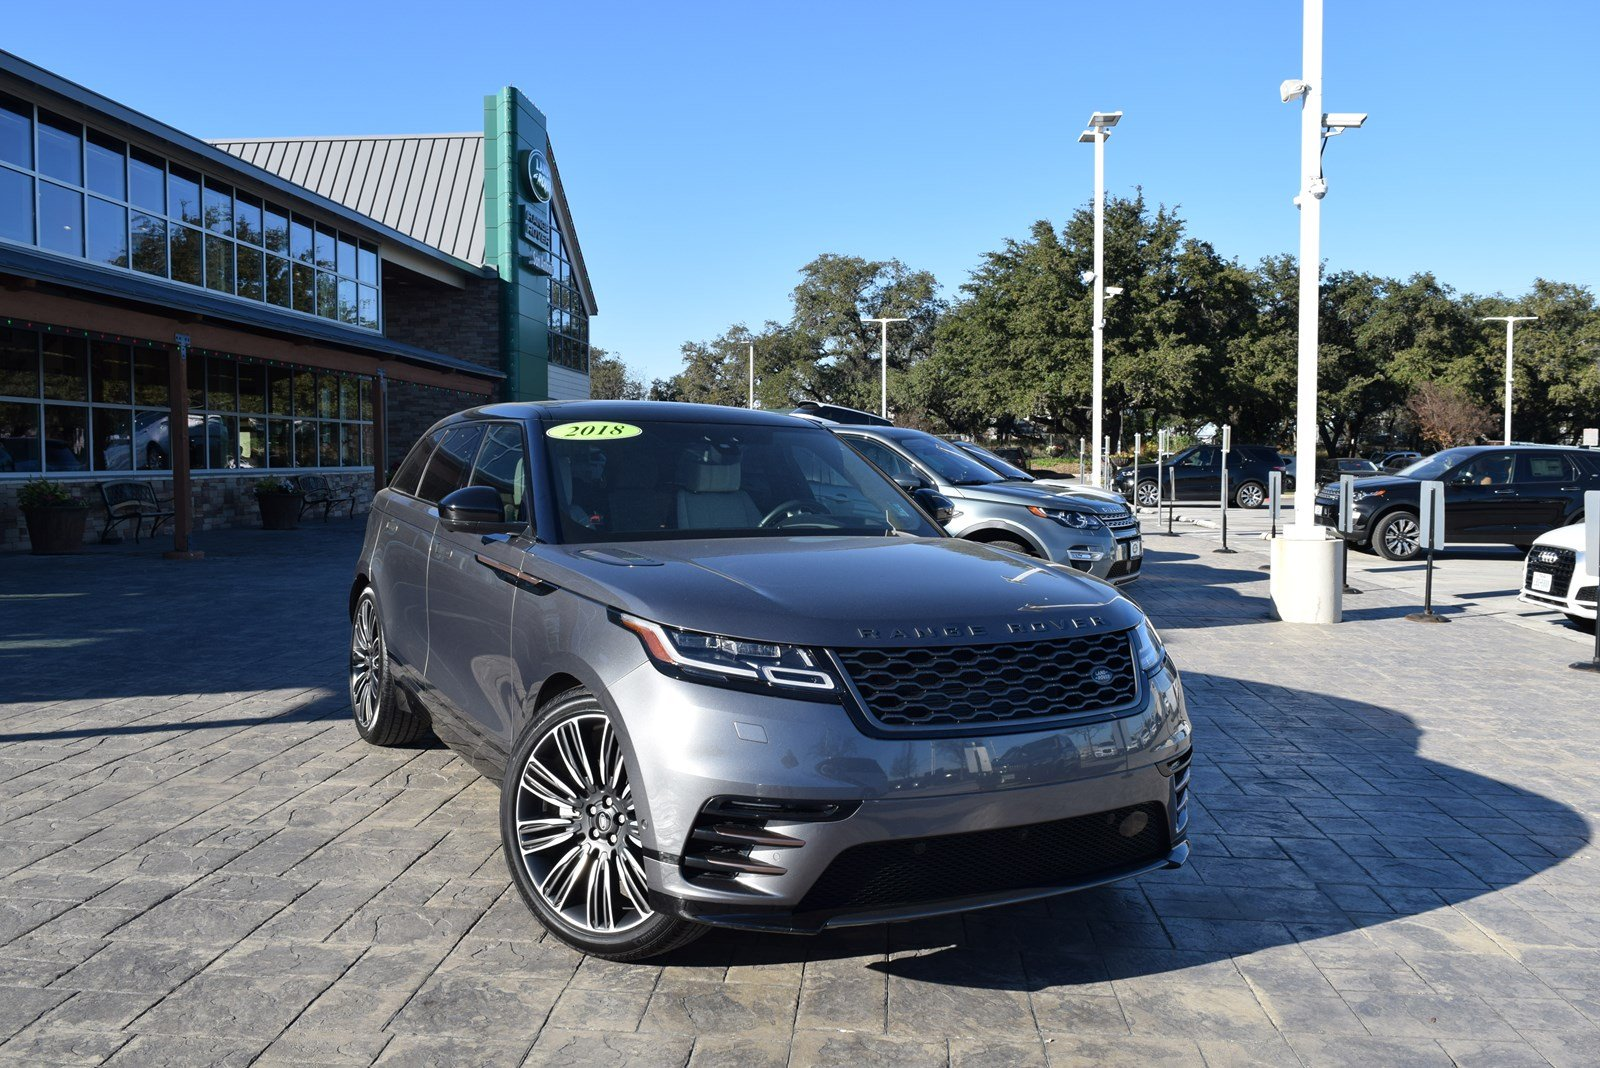 Certified Pre-Owned 2018 Land Rover Range Rover Velar First Edition